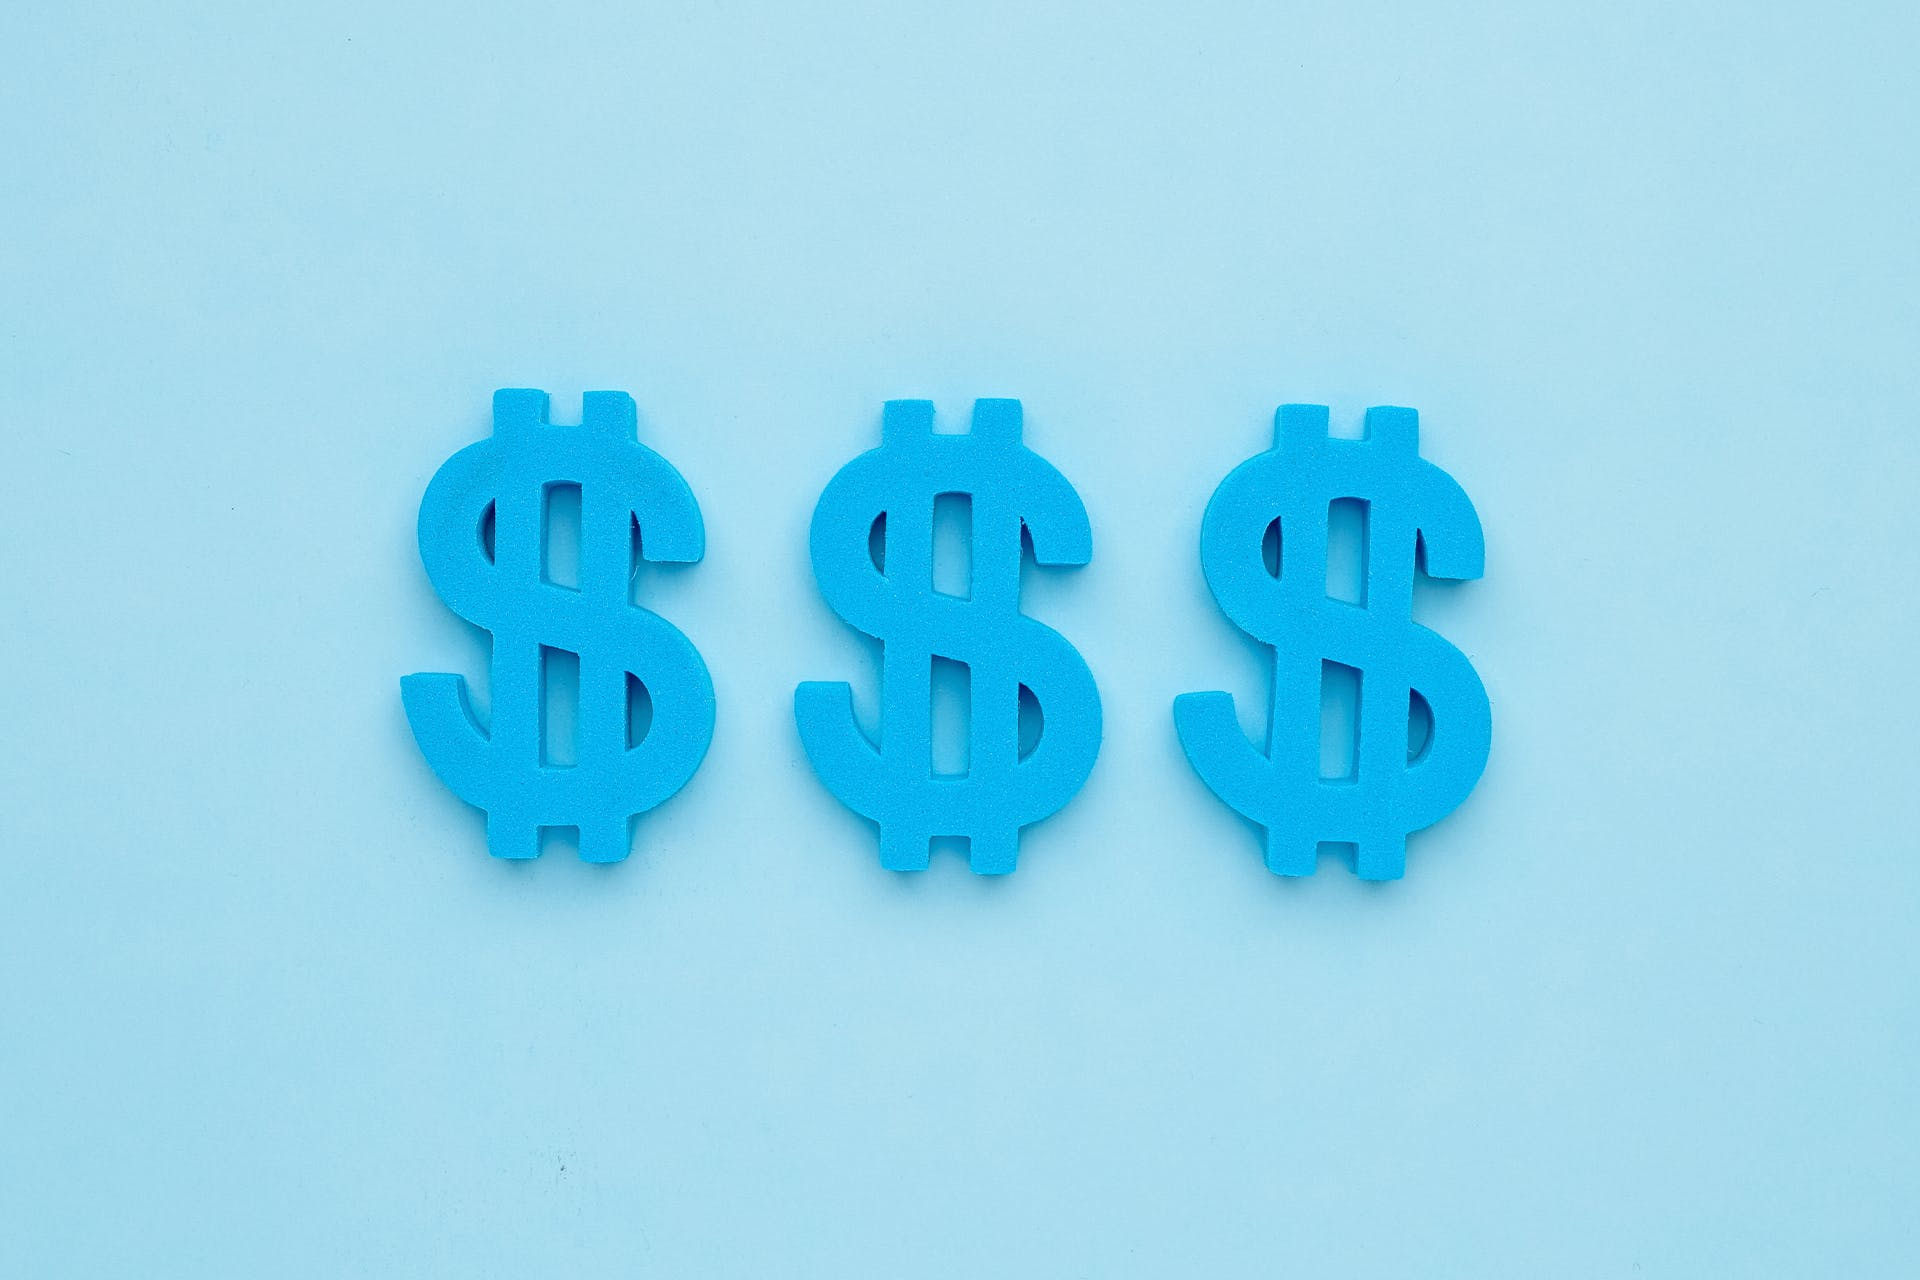 Three blue American dollar signs against a blue background. The dollar signs represent the revenue your marketing team could generate through Facebook lead ads.